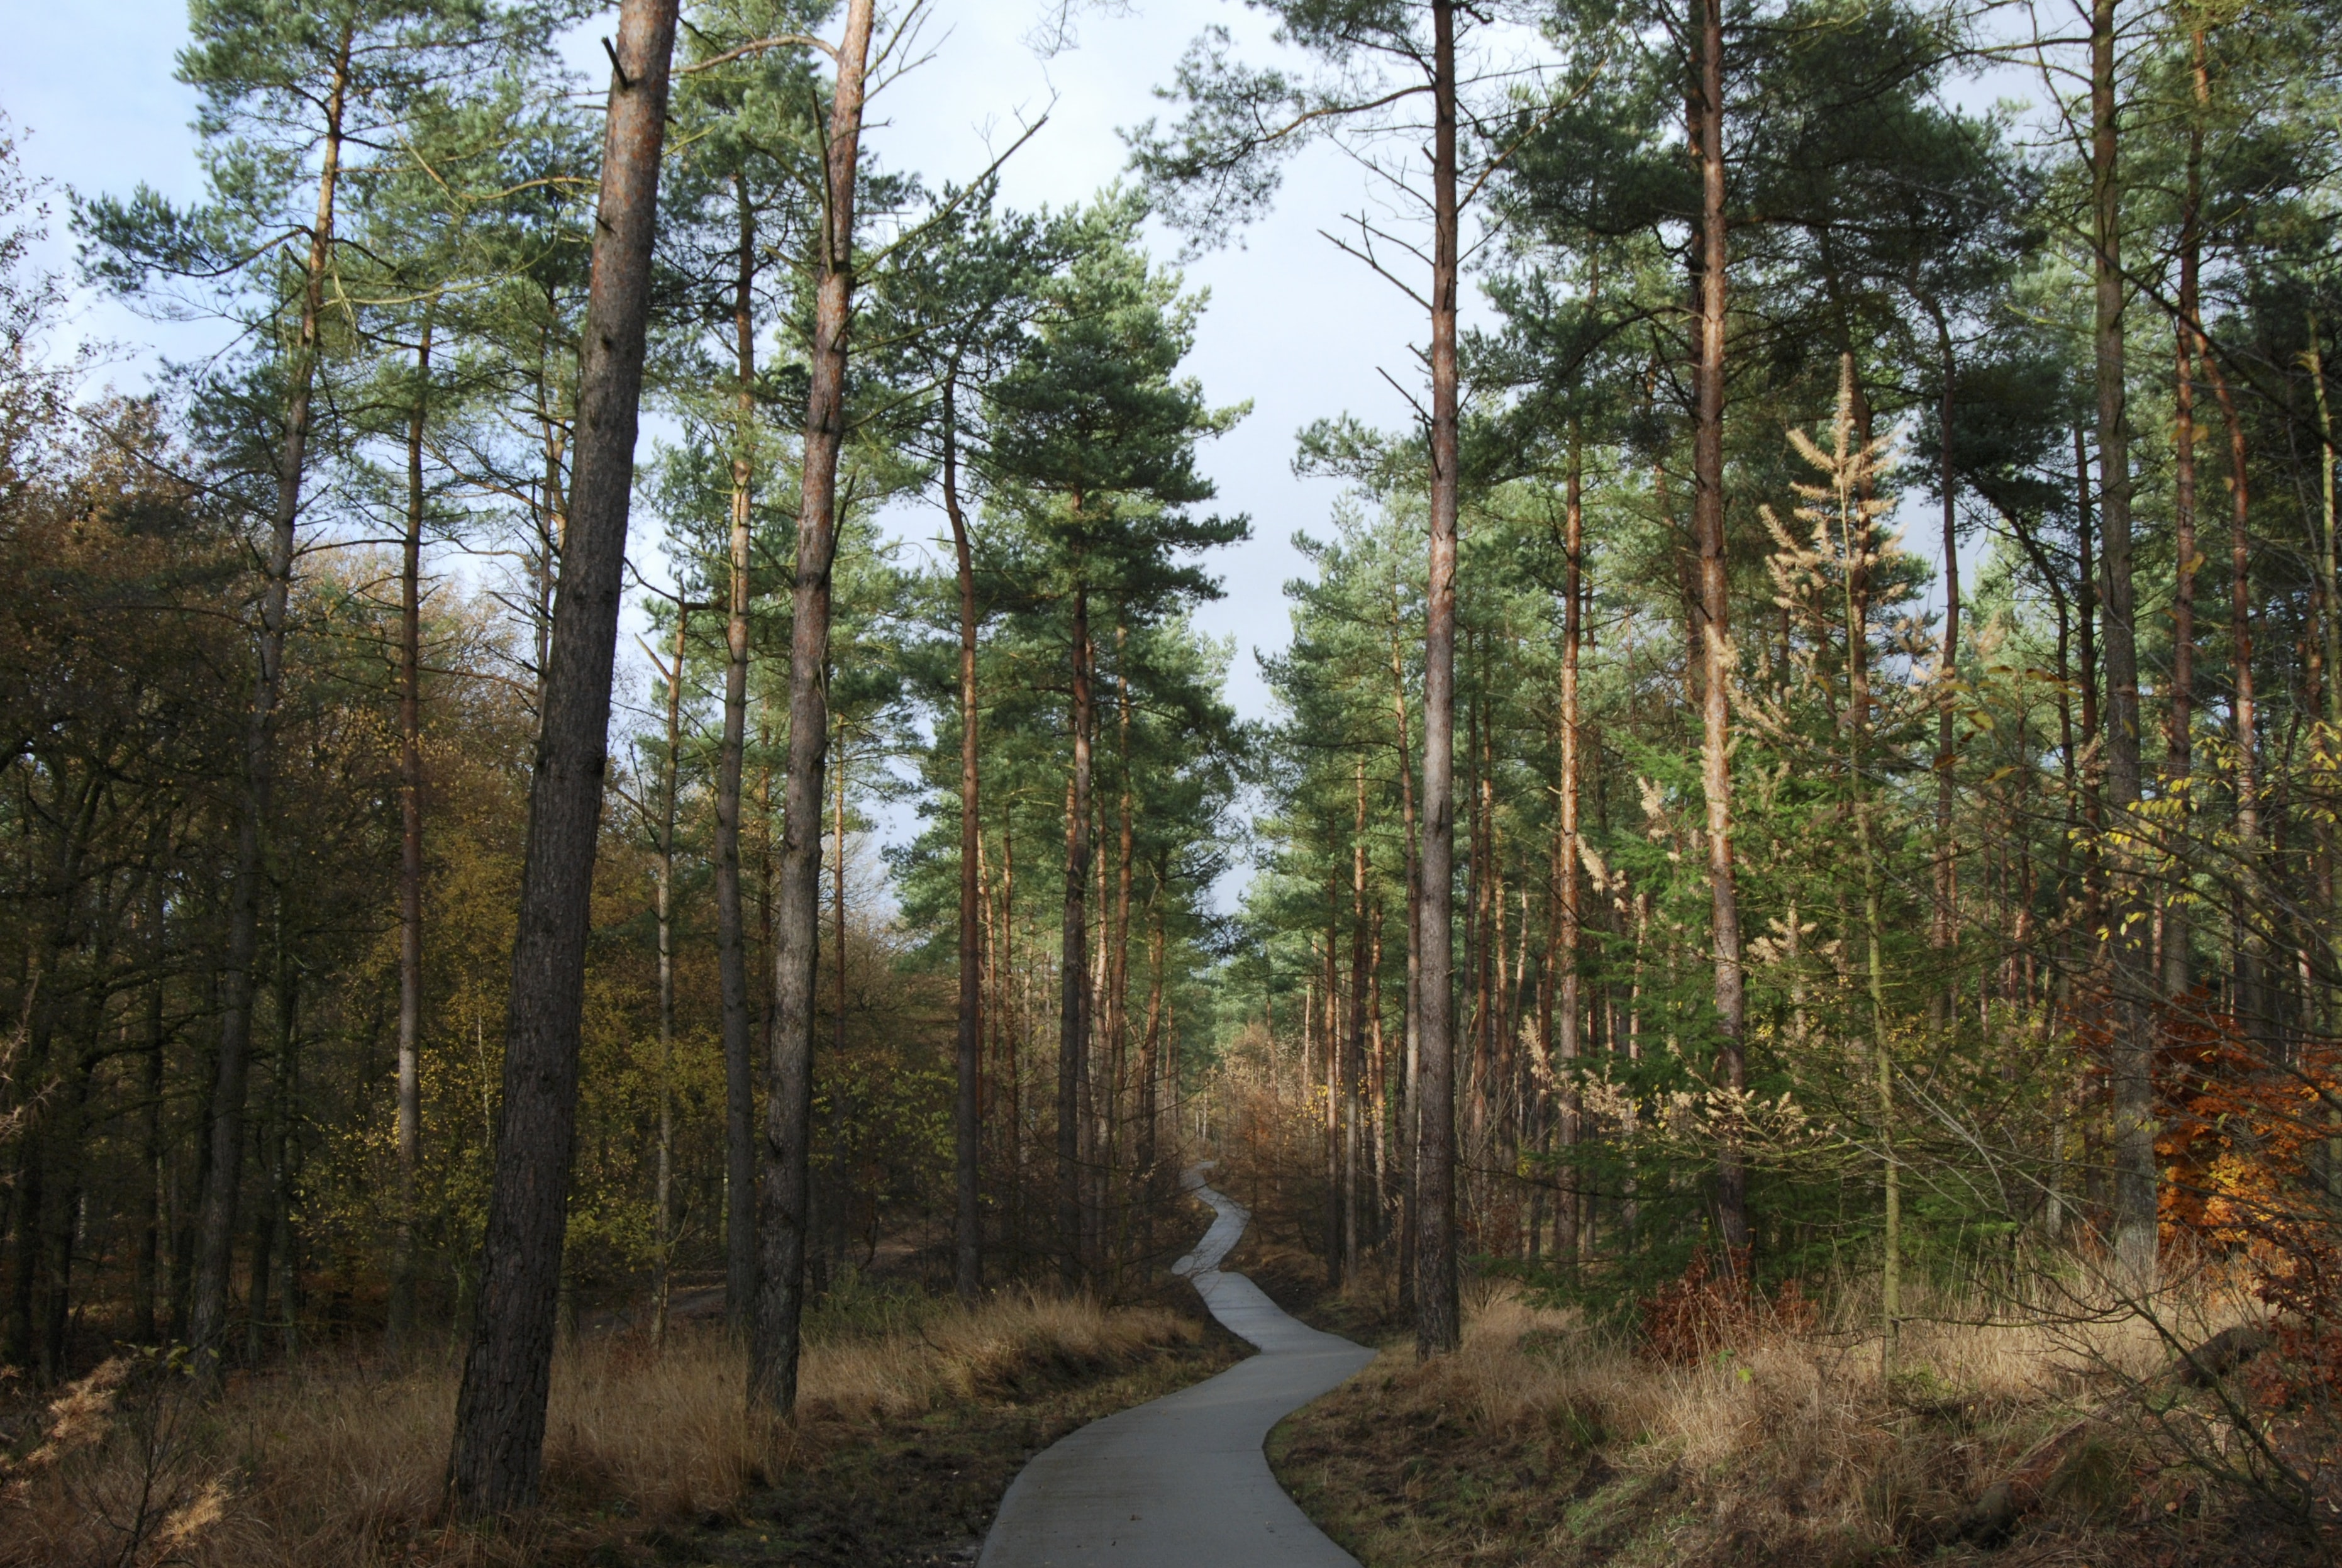 A narrow pathway winding through a pine forest